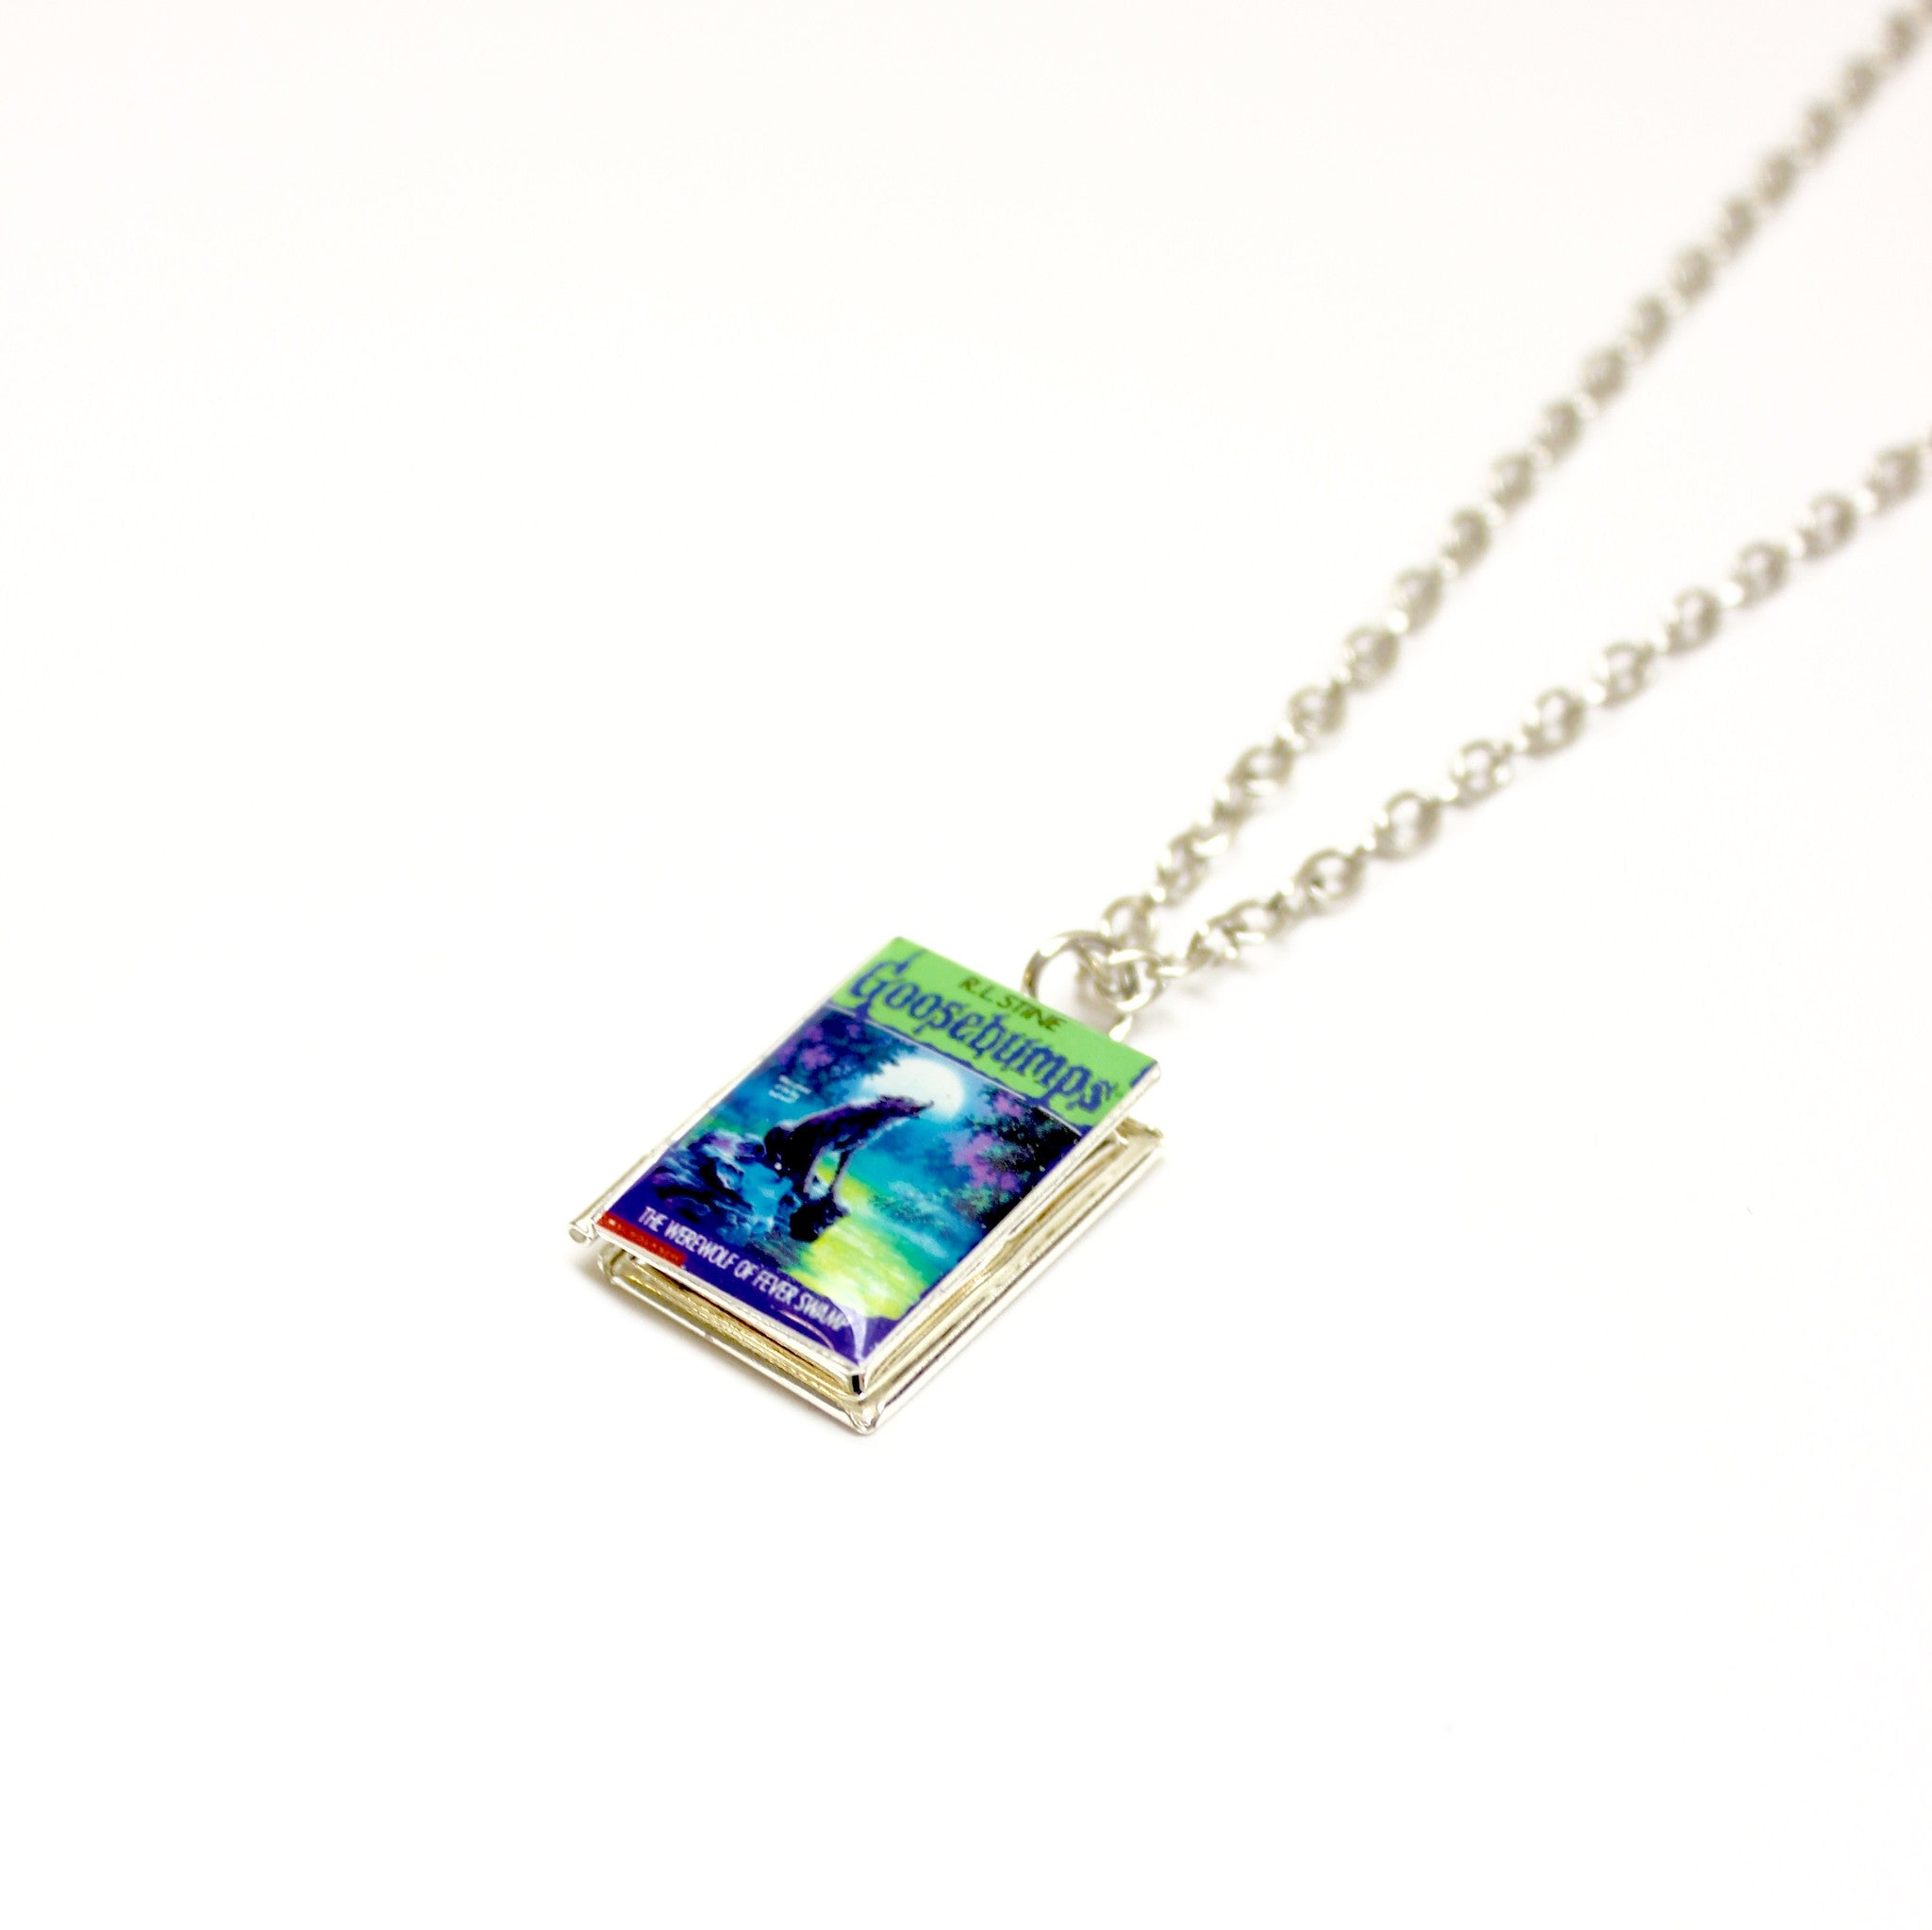 Goosebumps Book Necklace - Literary Lifestyle Company